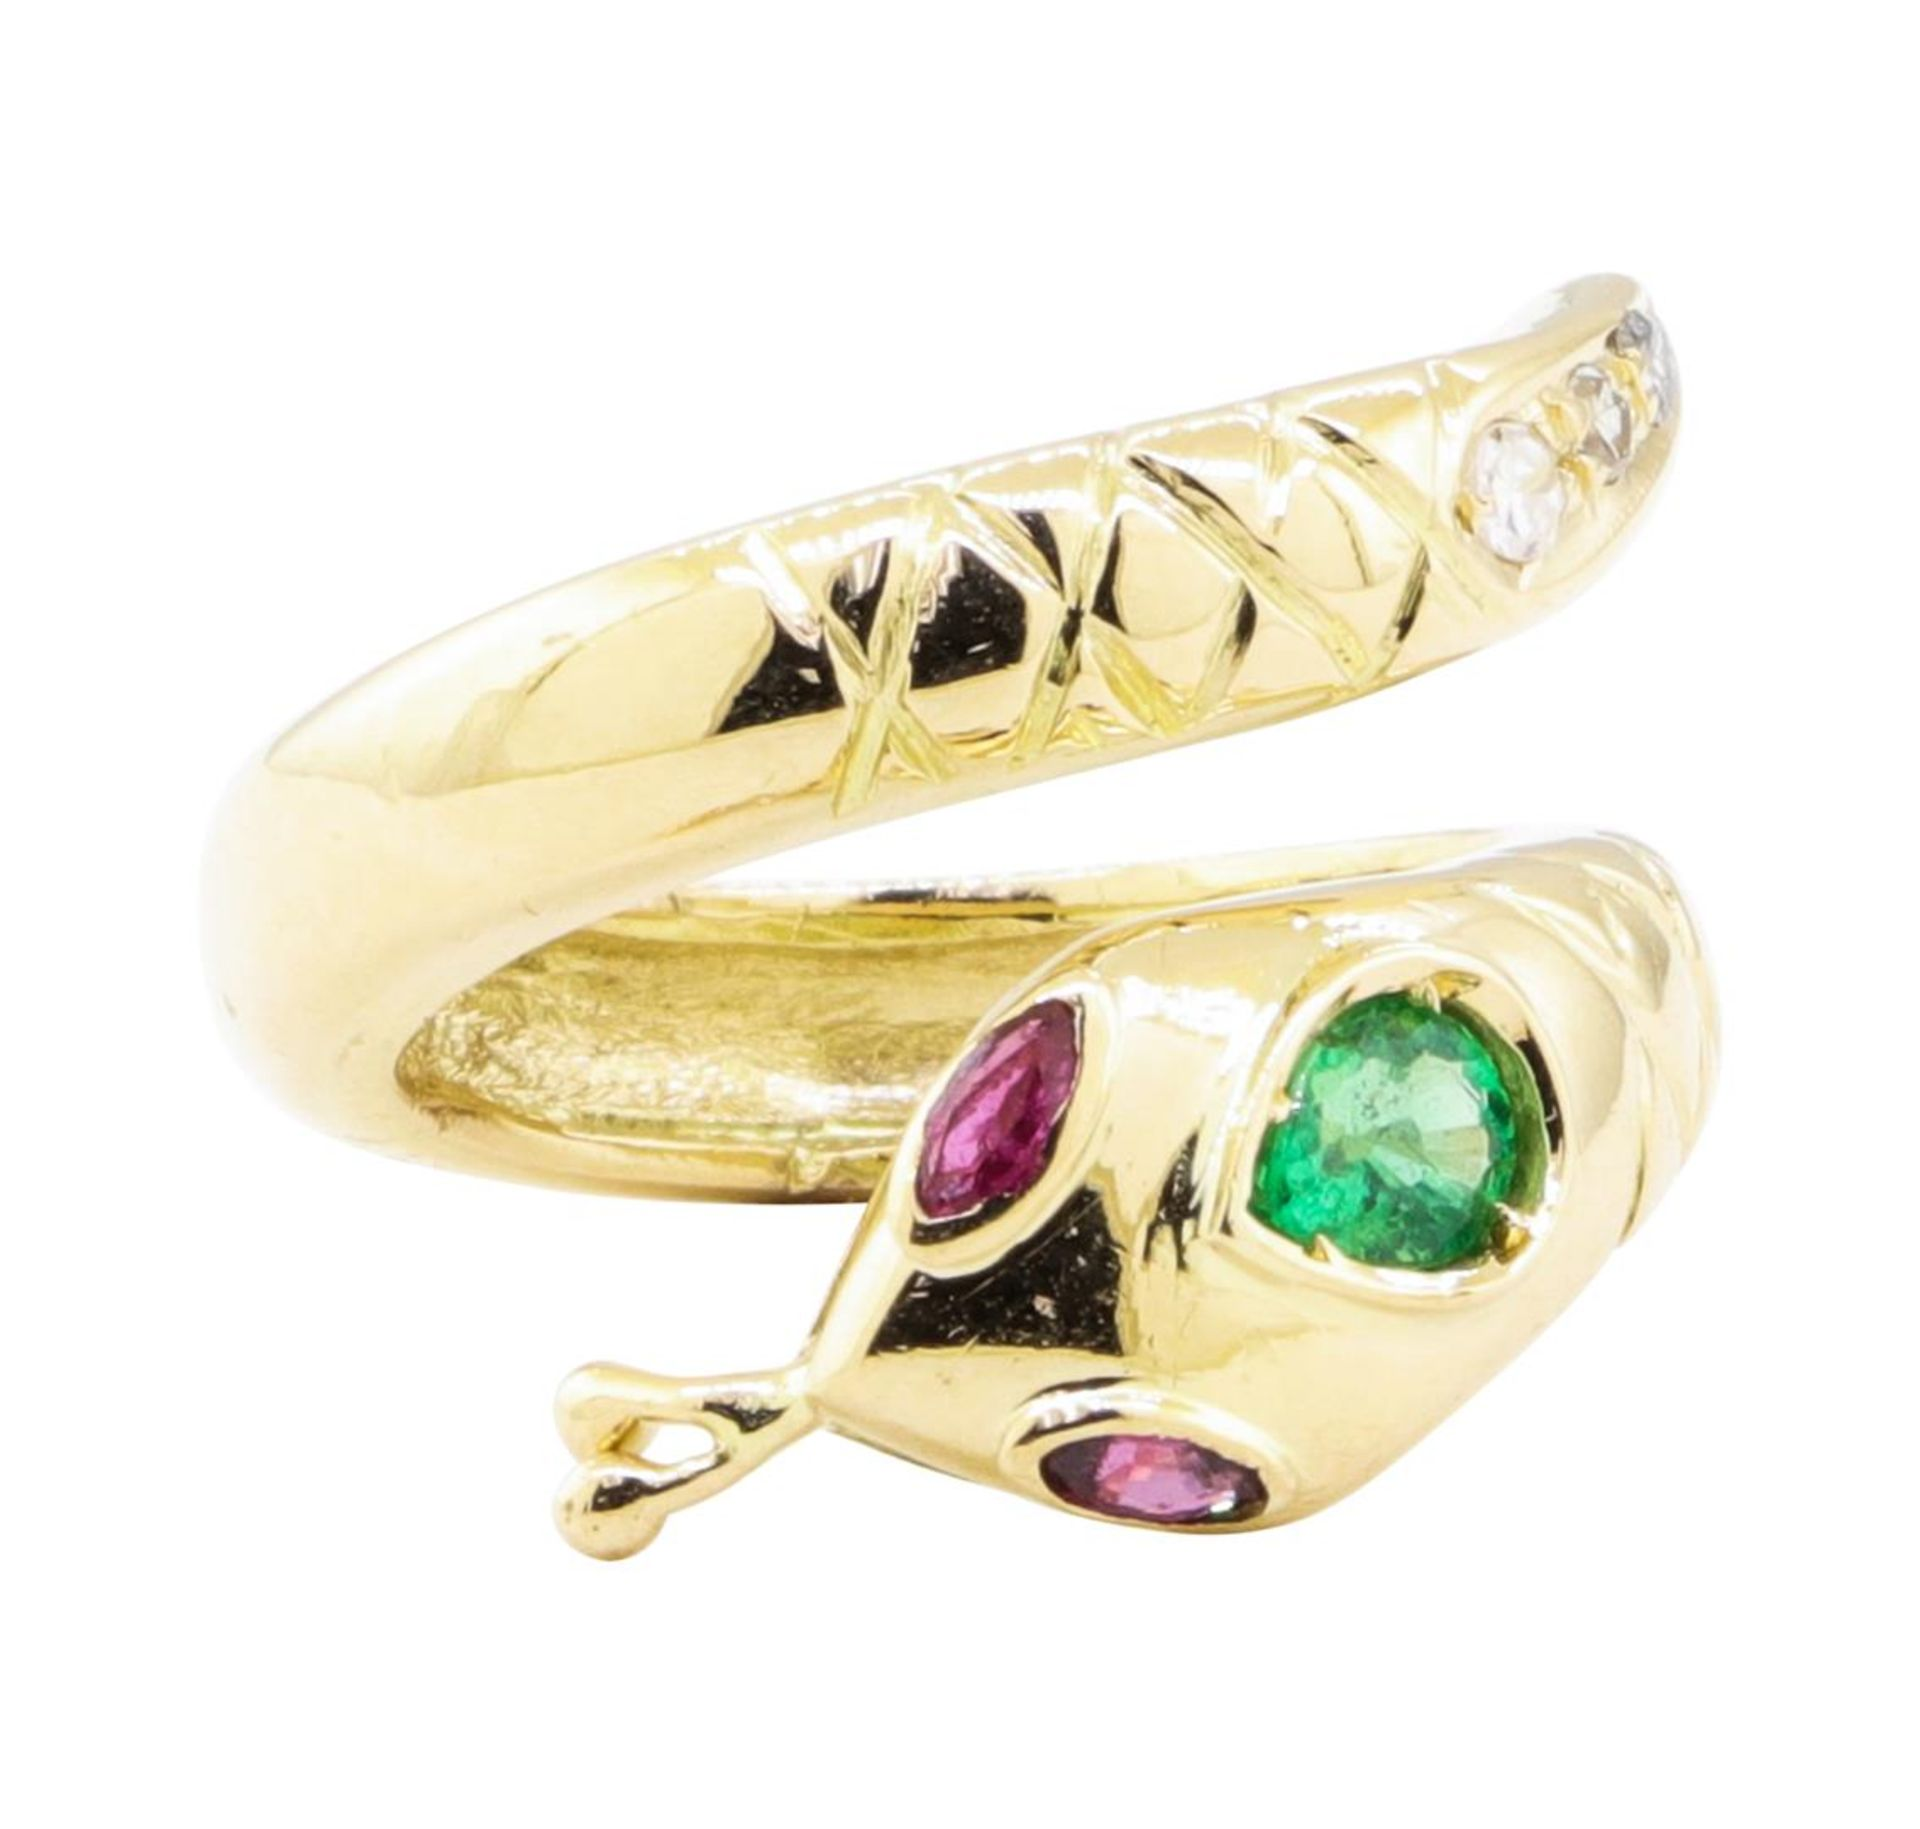 0.66ctw Emerald, Ruby, and Diamond Snake Ring - 14KT Yellow Gold